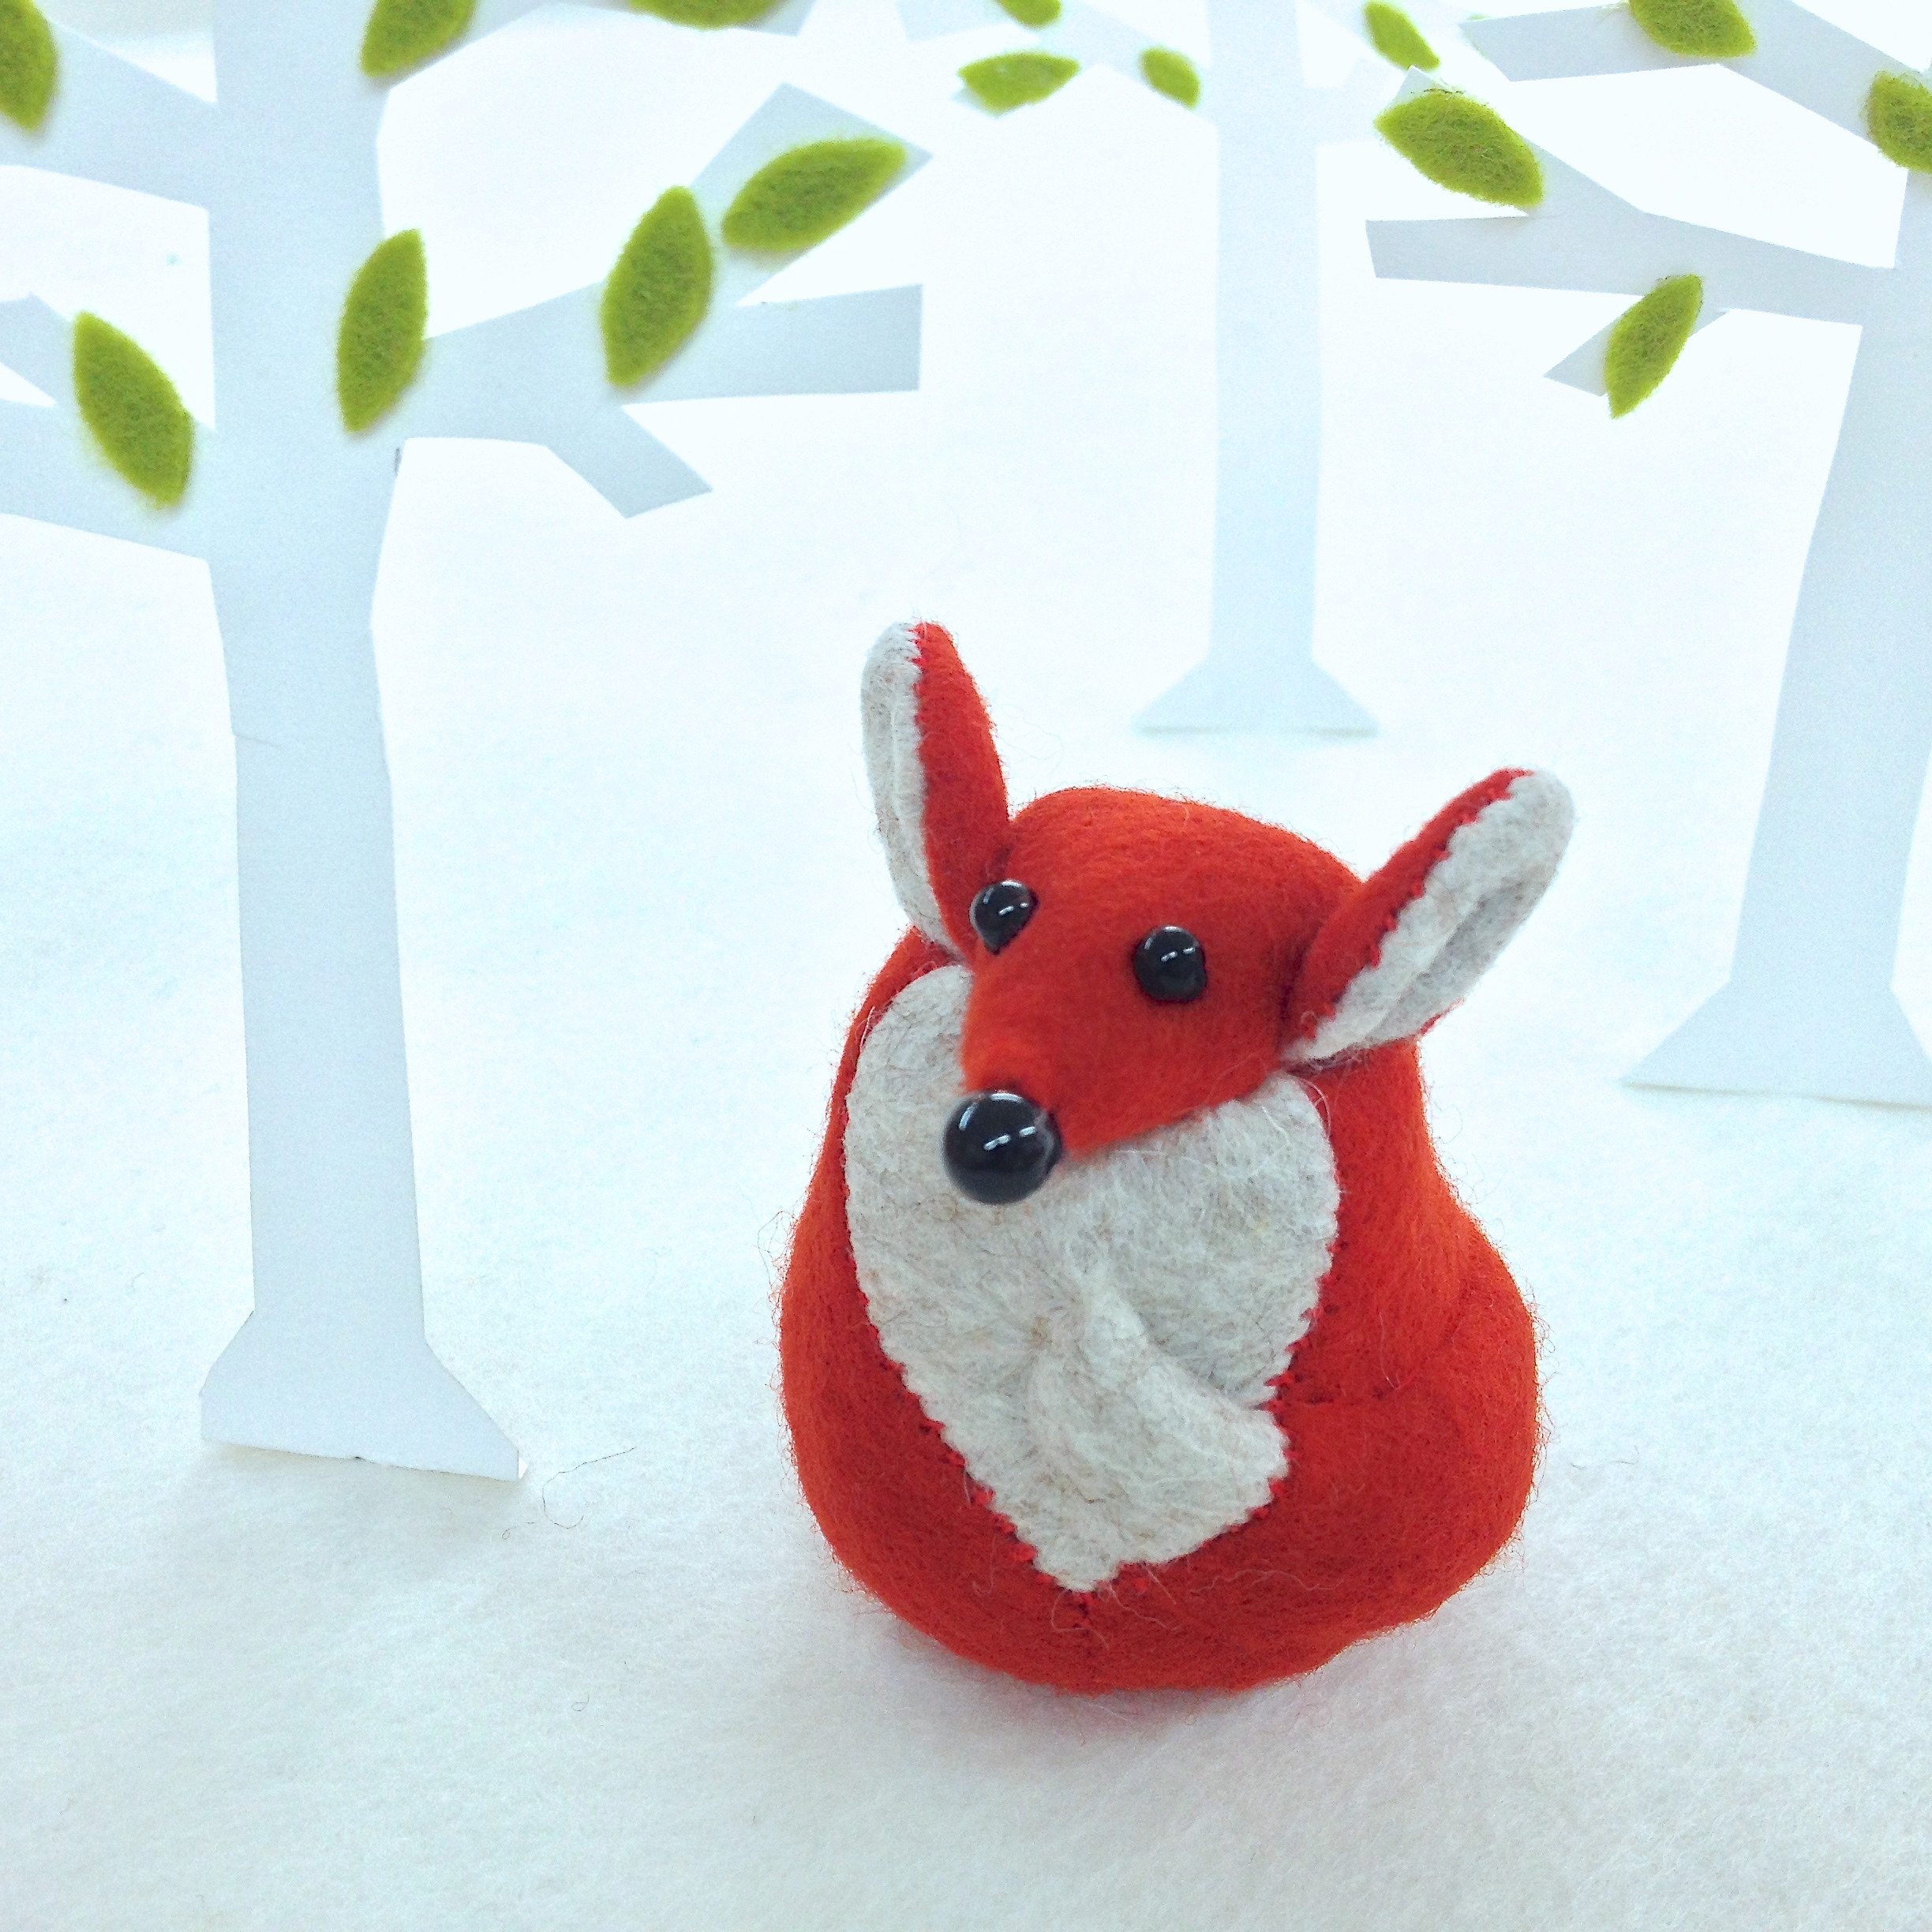 Findlay the Fox paperweight handmade from felt, recycled polyester and weighted with steel.